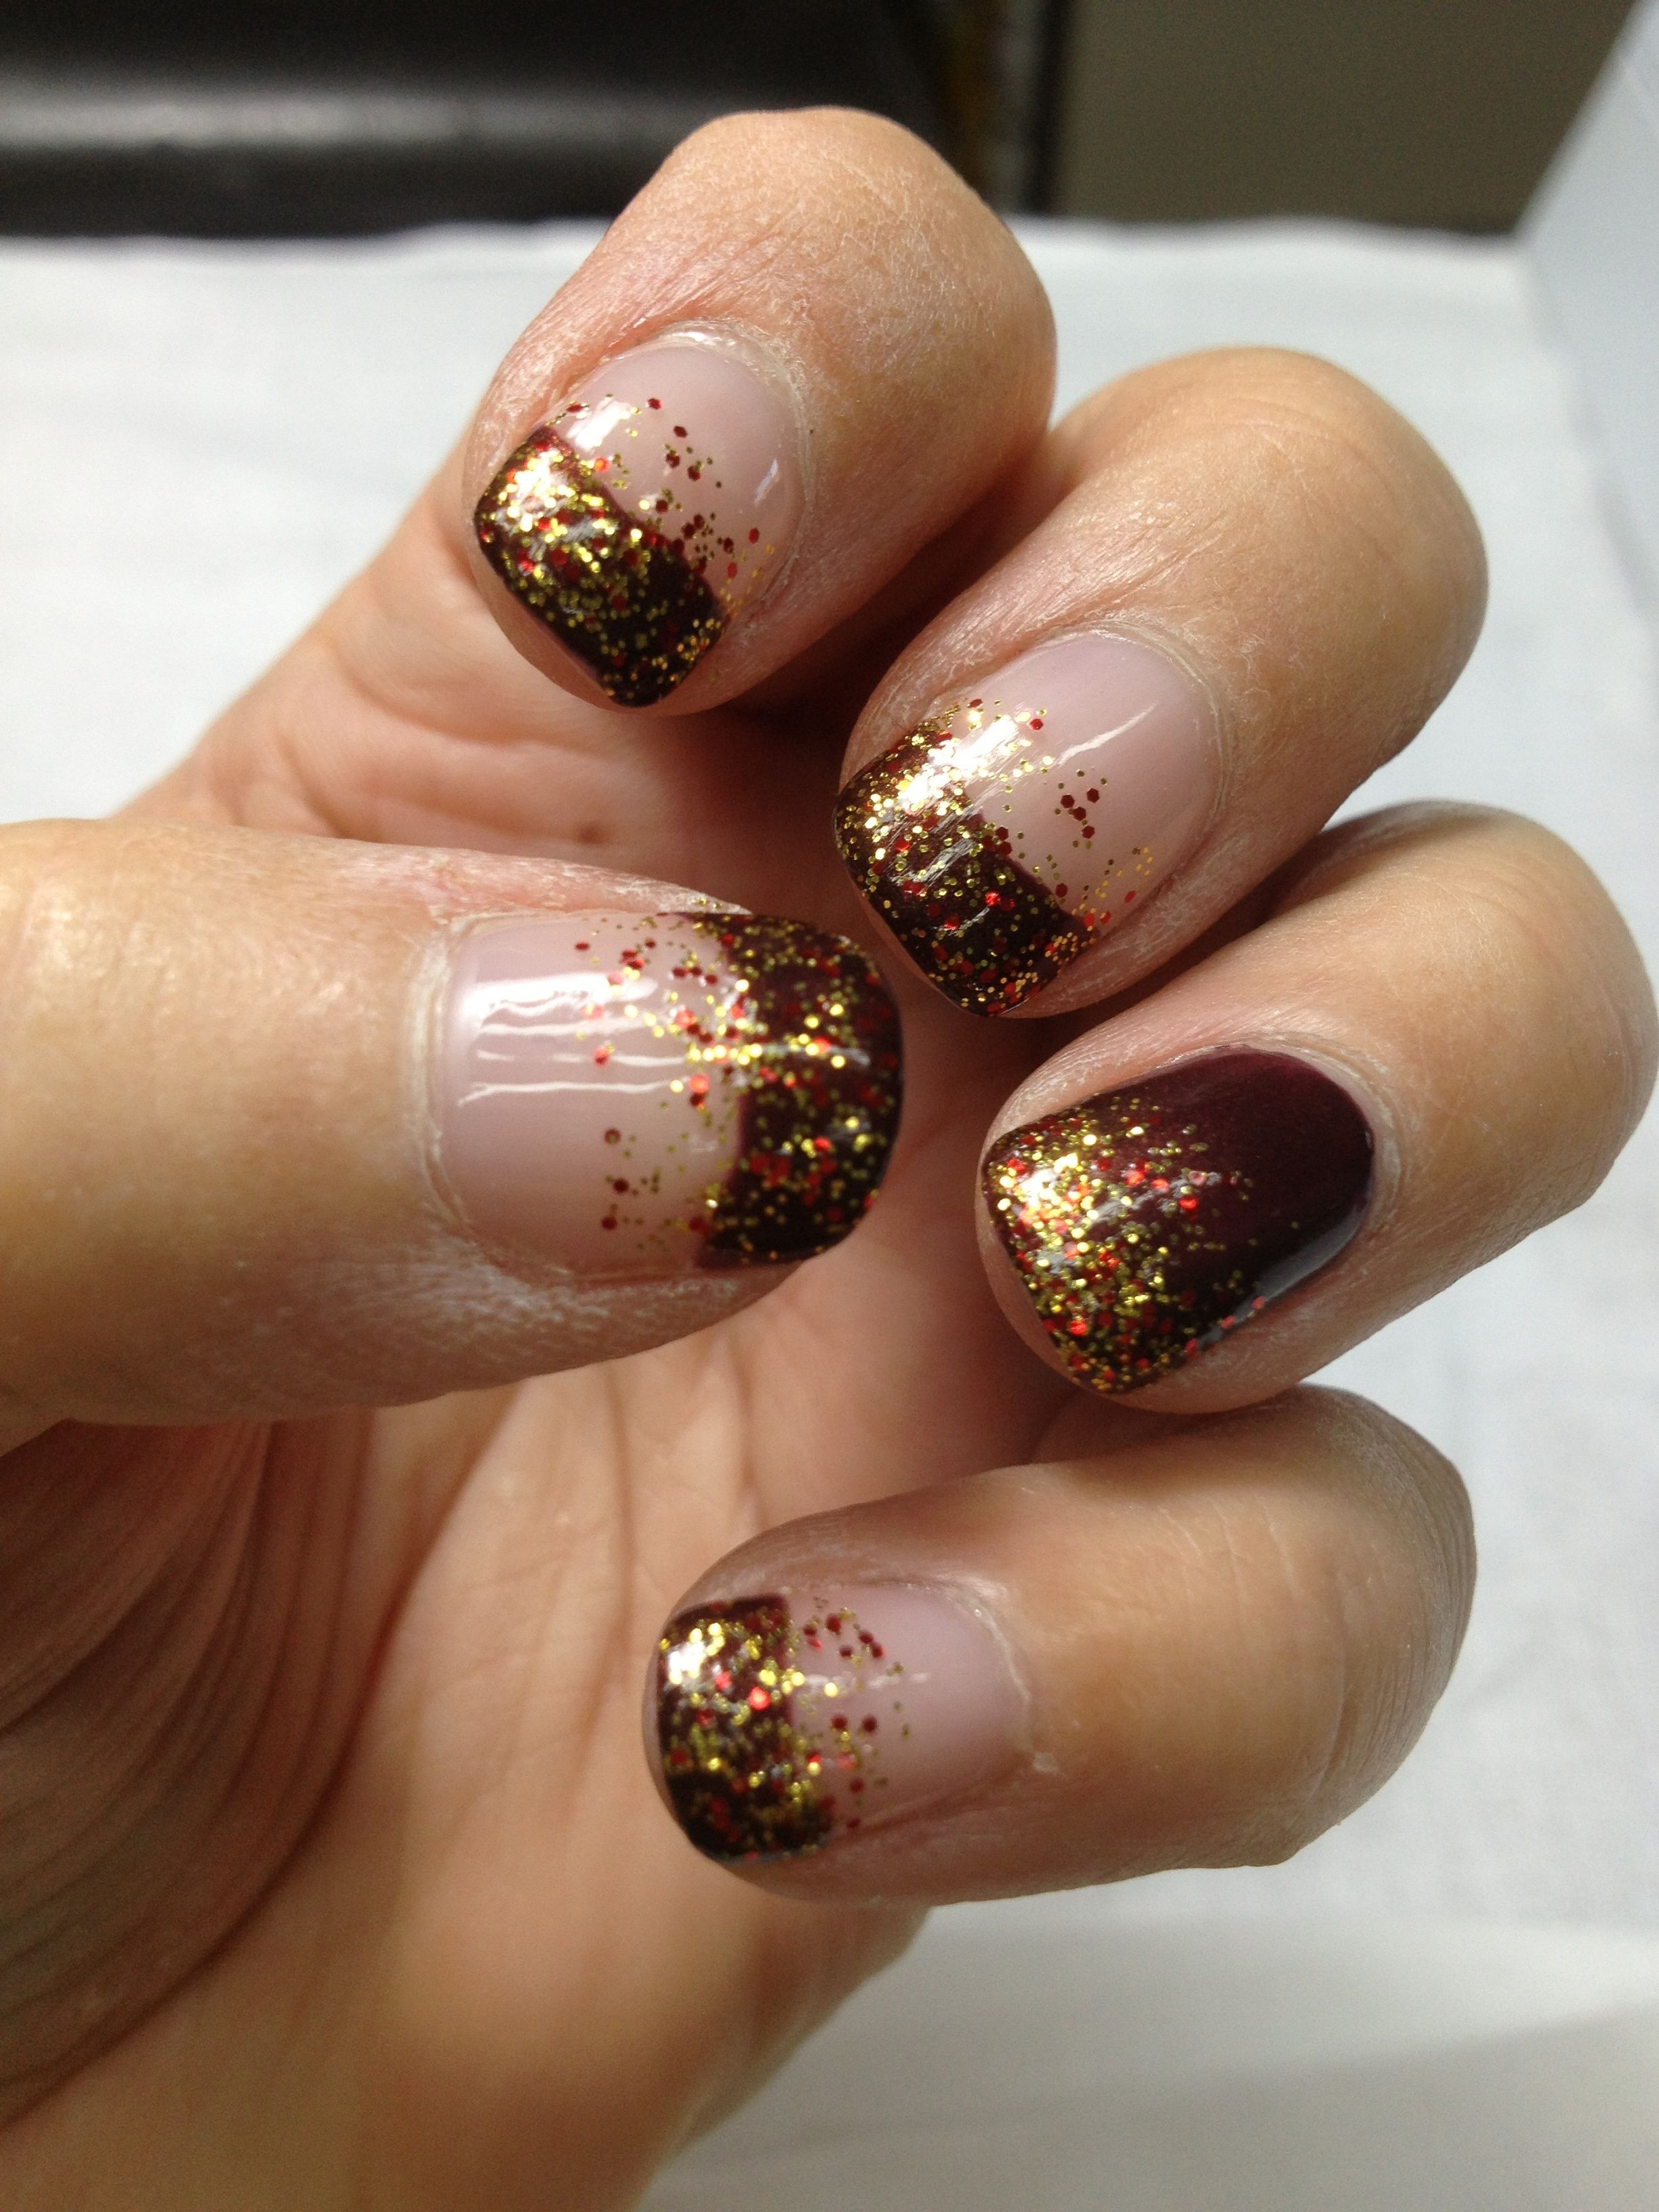 Cool idea!! Need sparkles with these tones in it | Nails ...